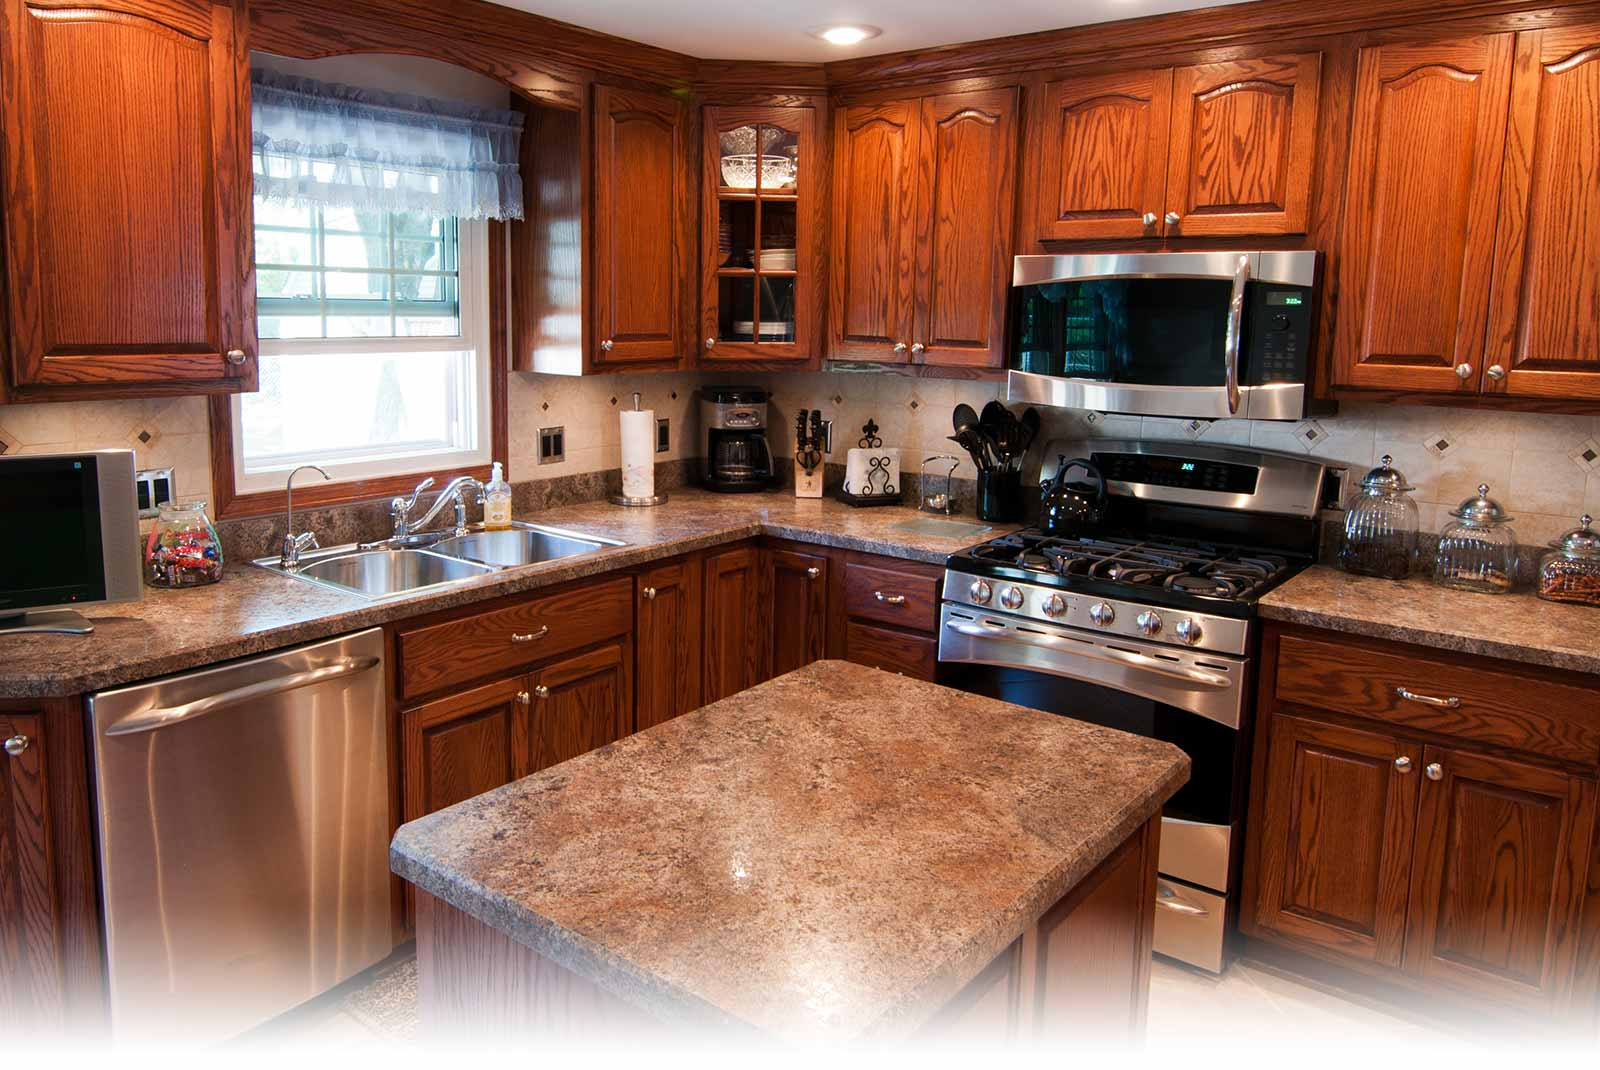 Orland Park Remodeling Designs Custom Kitchens Built In Cabinets For Homes And Offices Countertops Bathroom Remodels And Tile For Bathrooms And Fireplaces